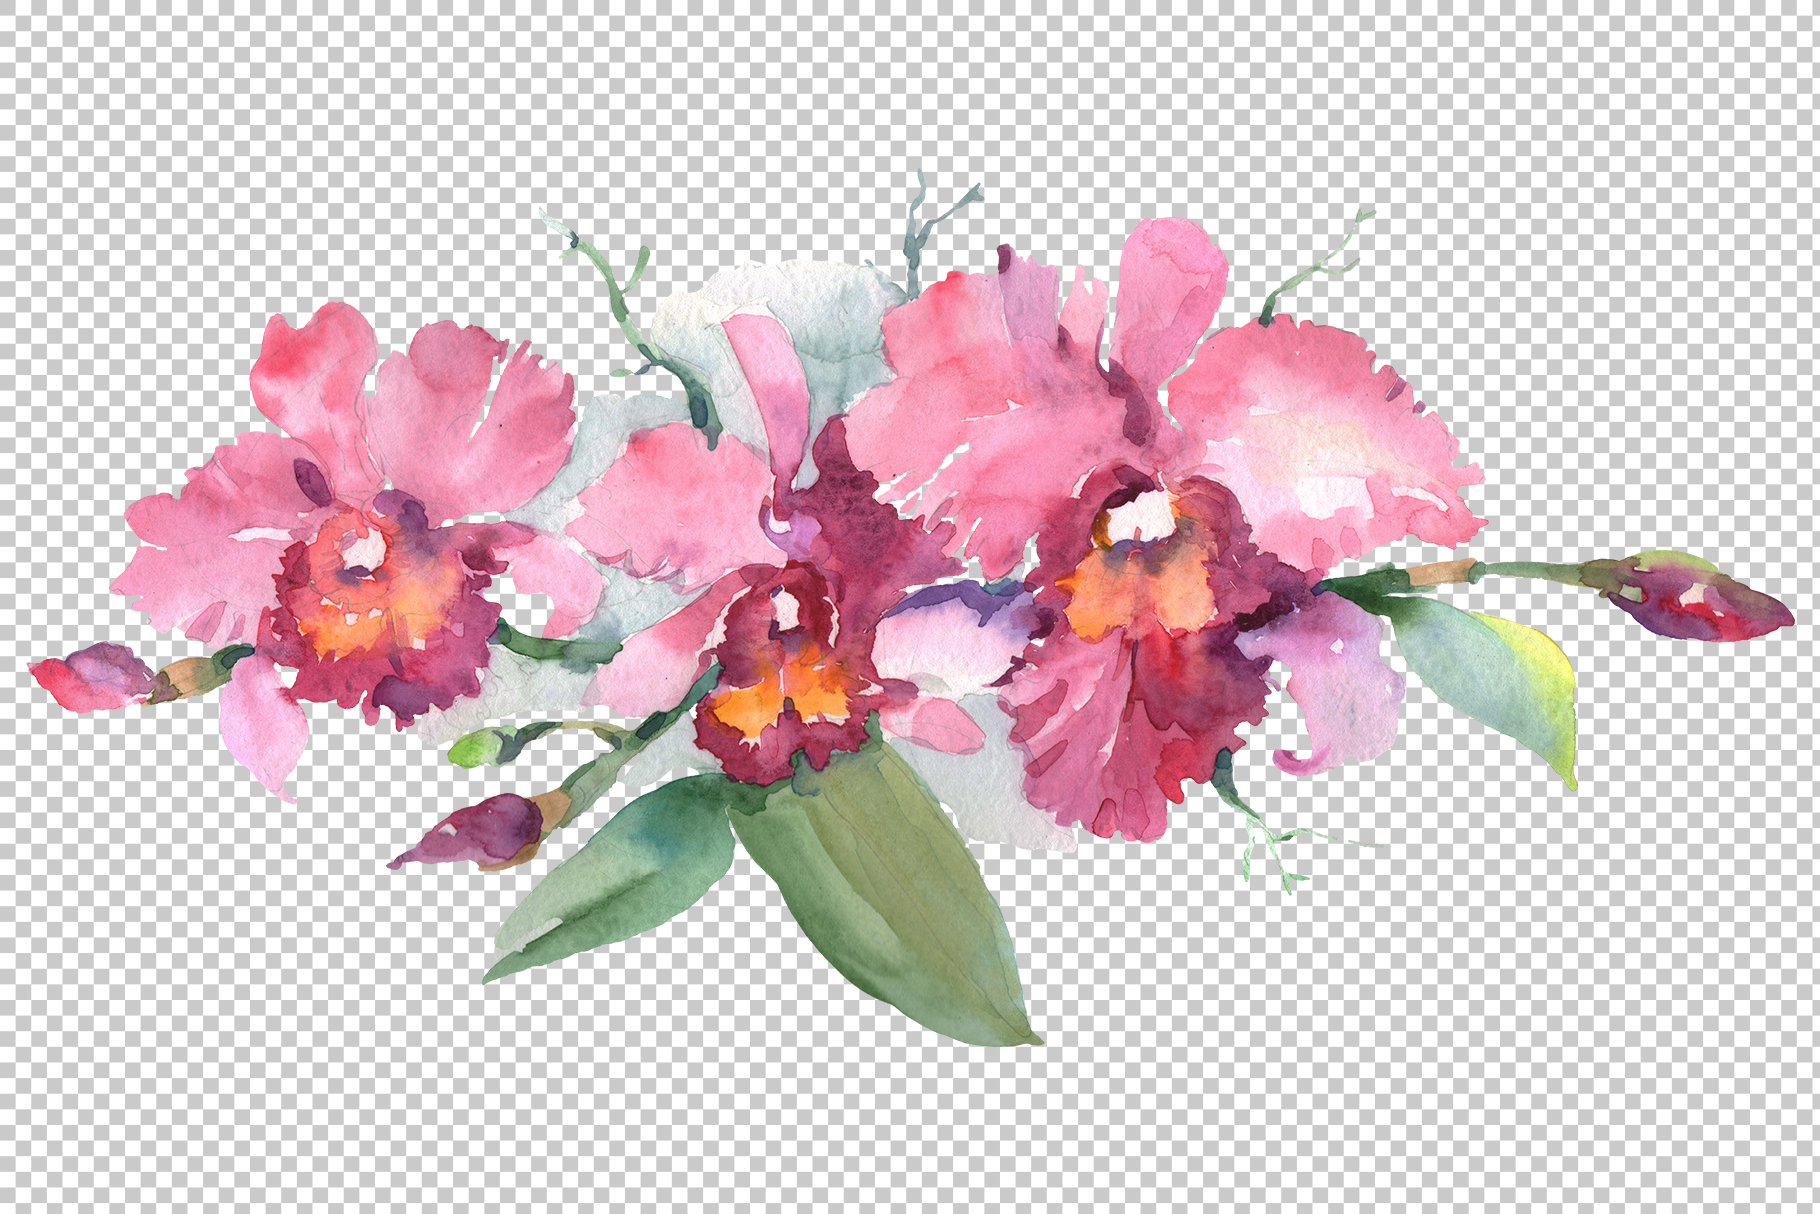 Branch of pink orchids watercolor png example image 2